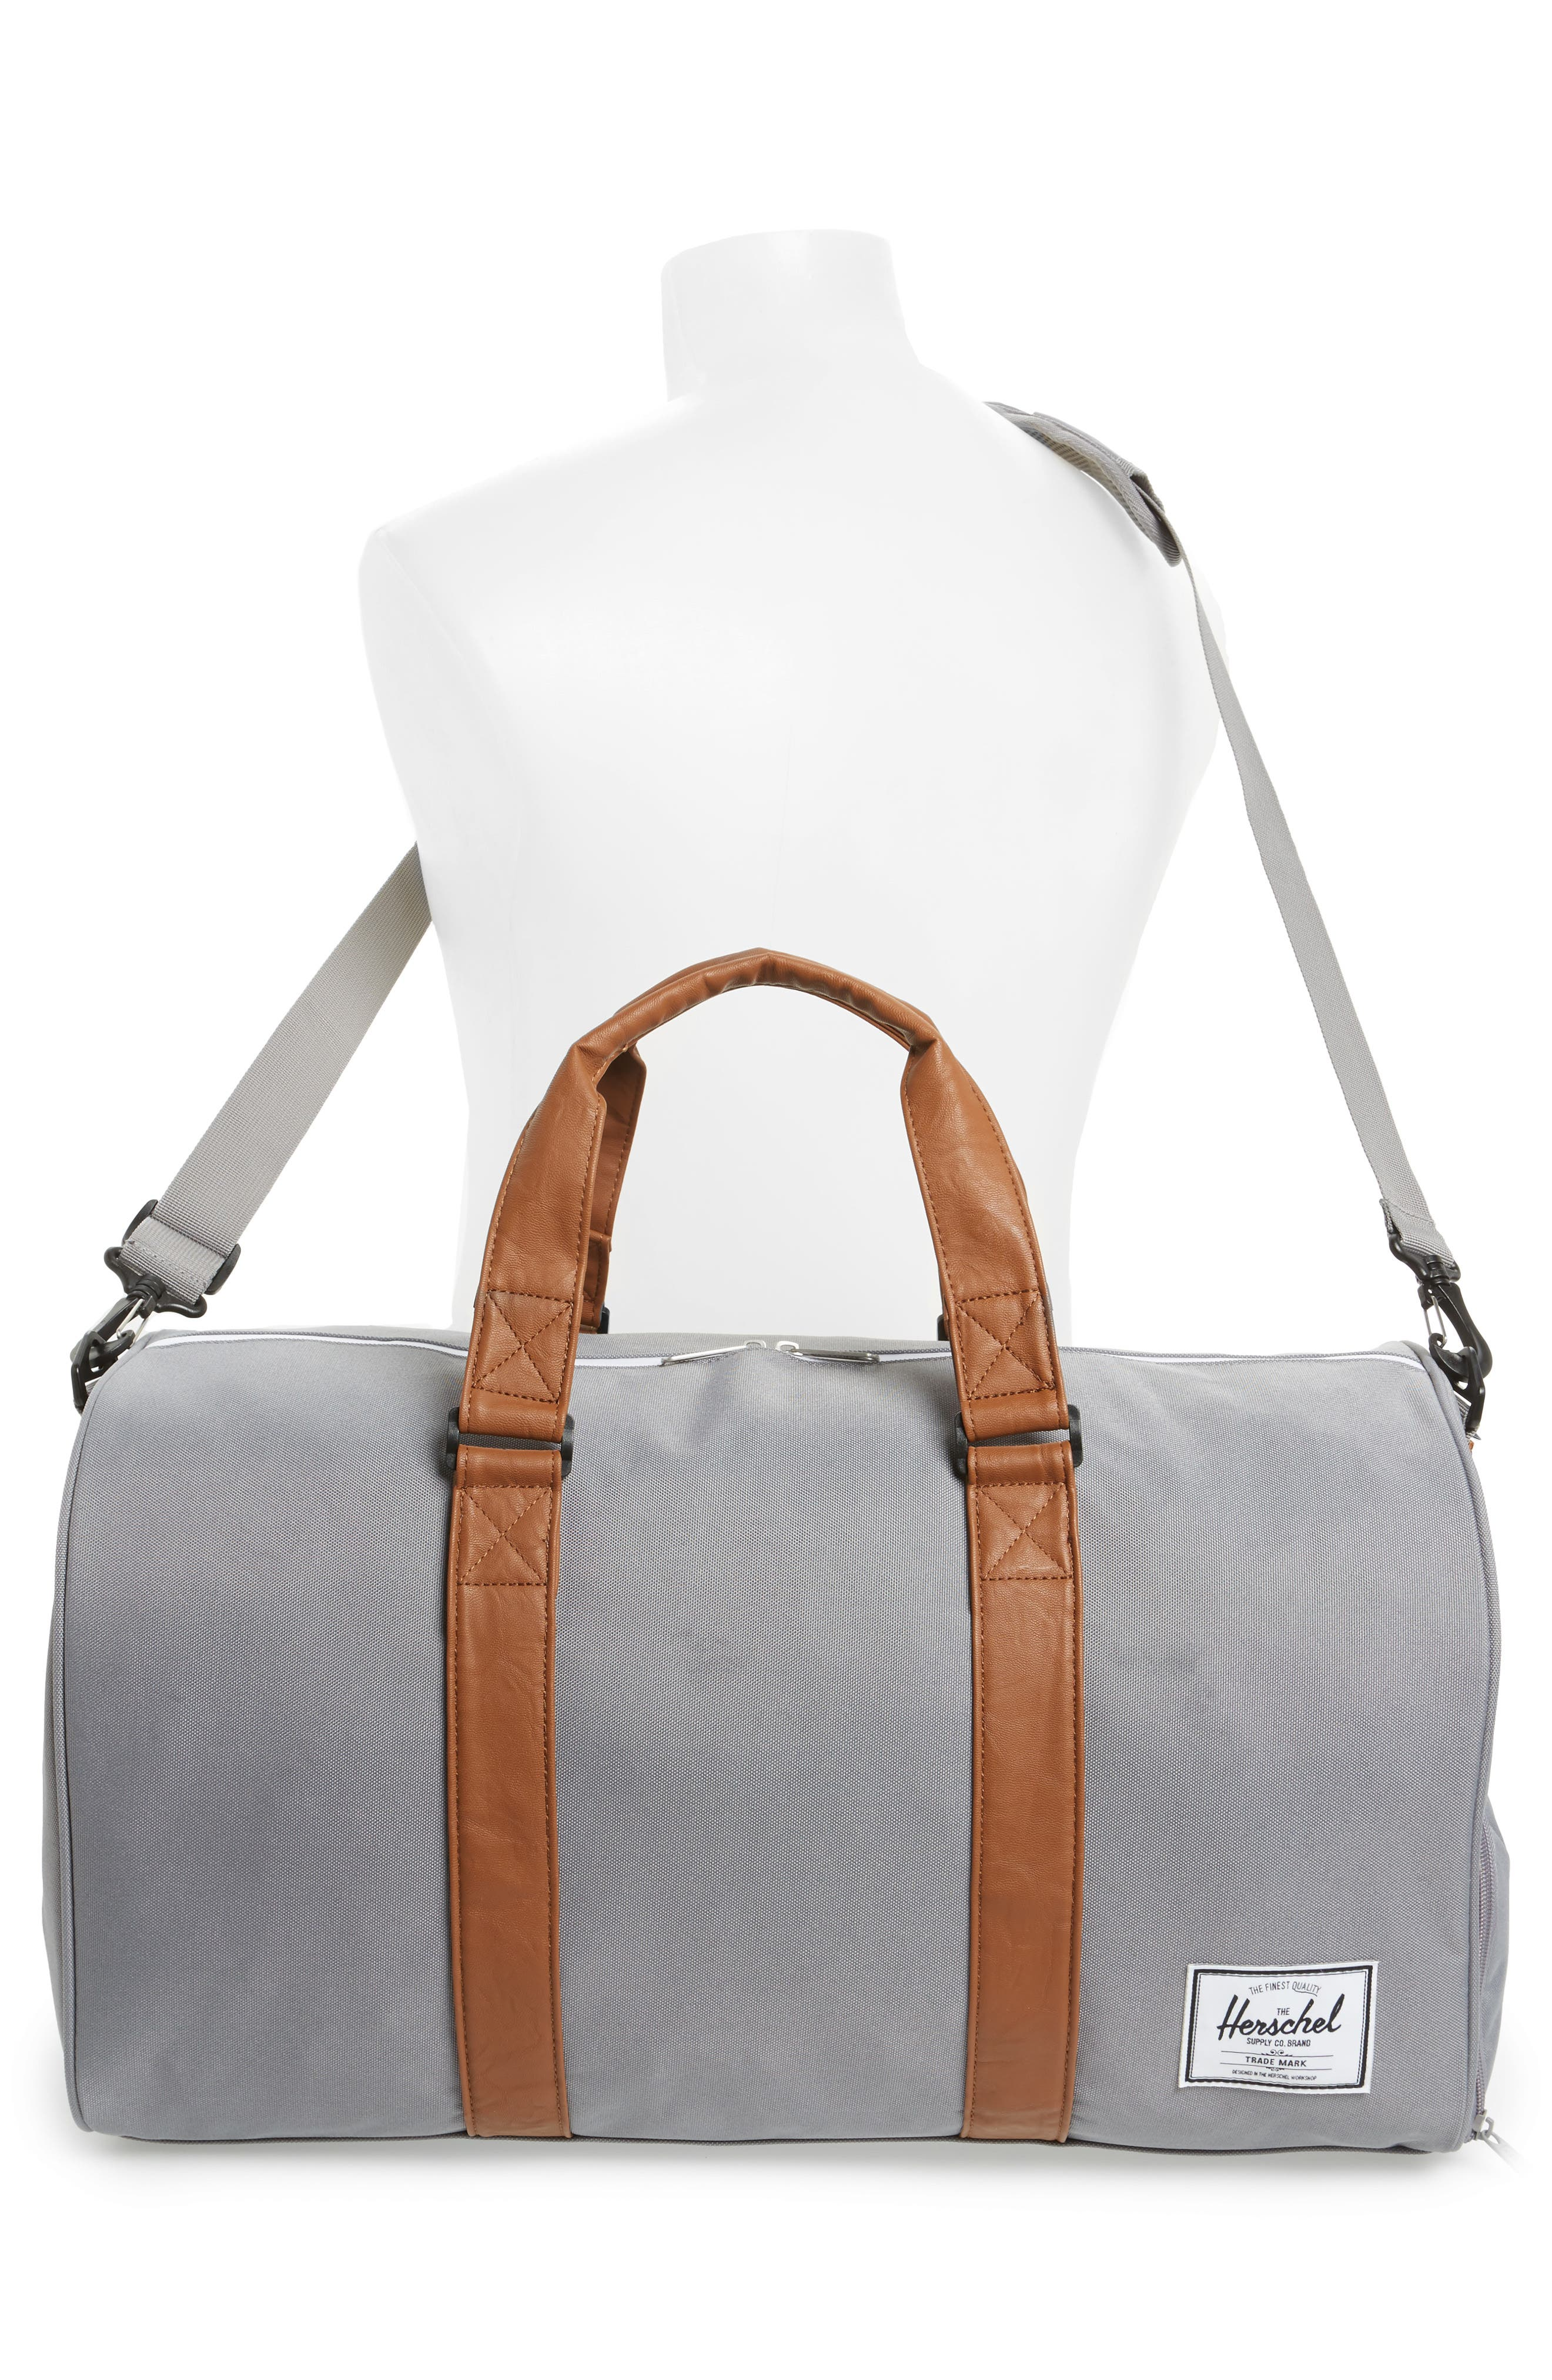 Canvas tote bags on wheels - Canvas Tote Bags On Wheels 38